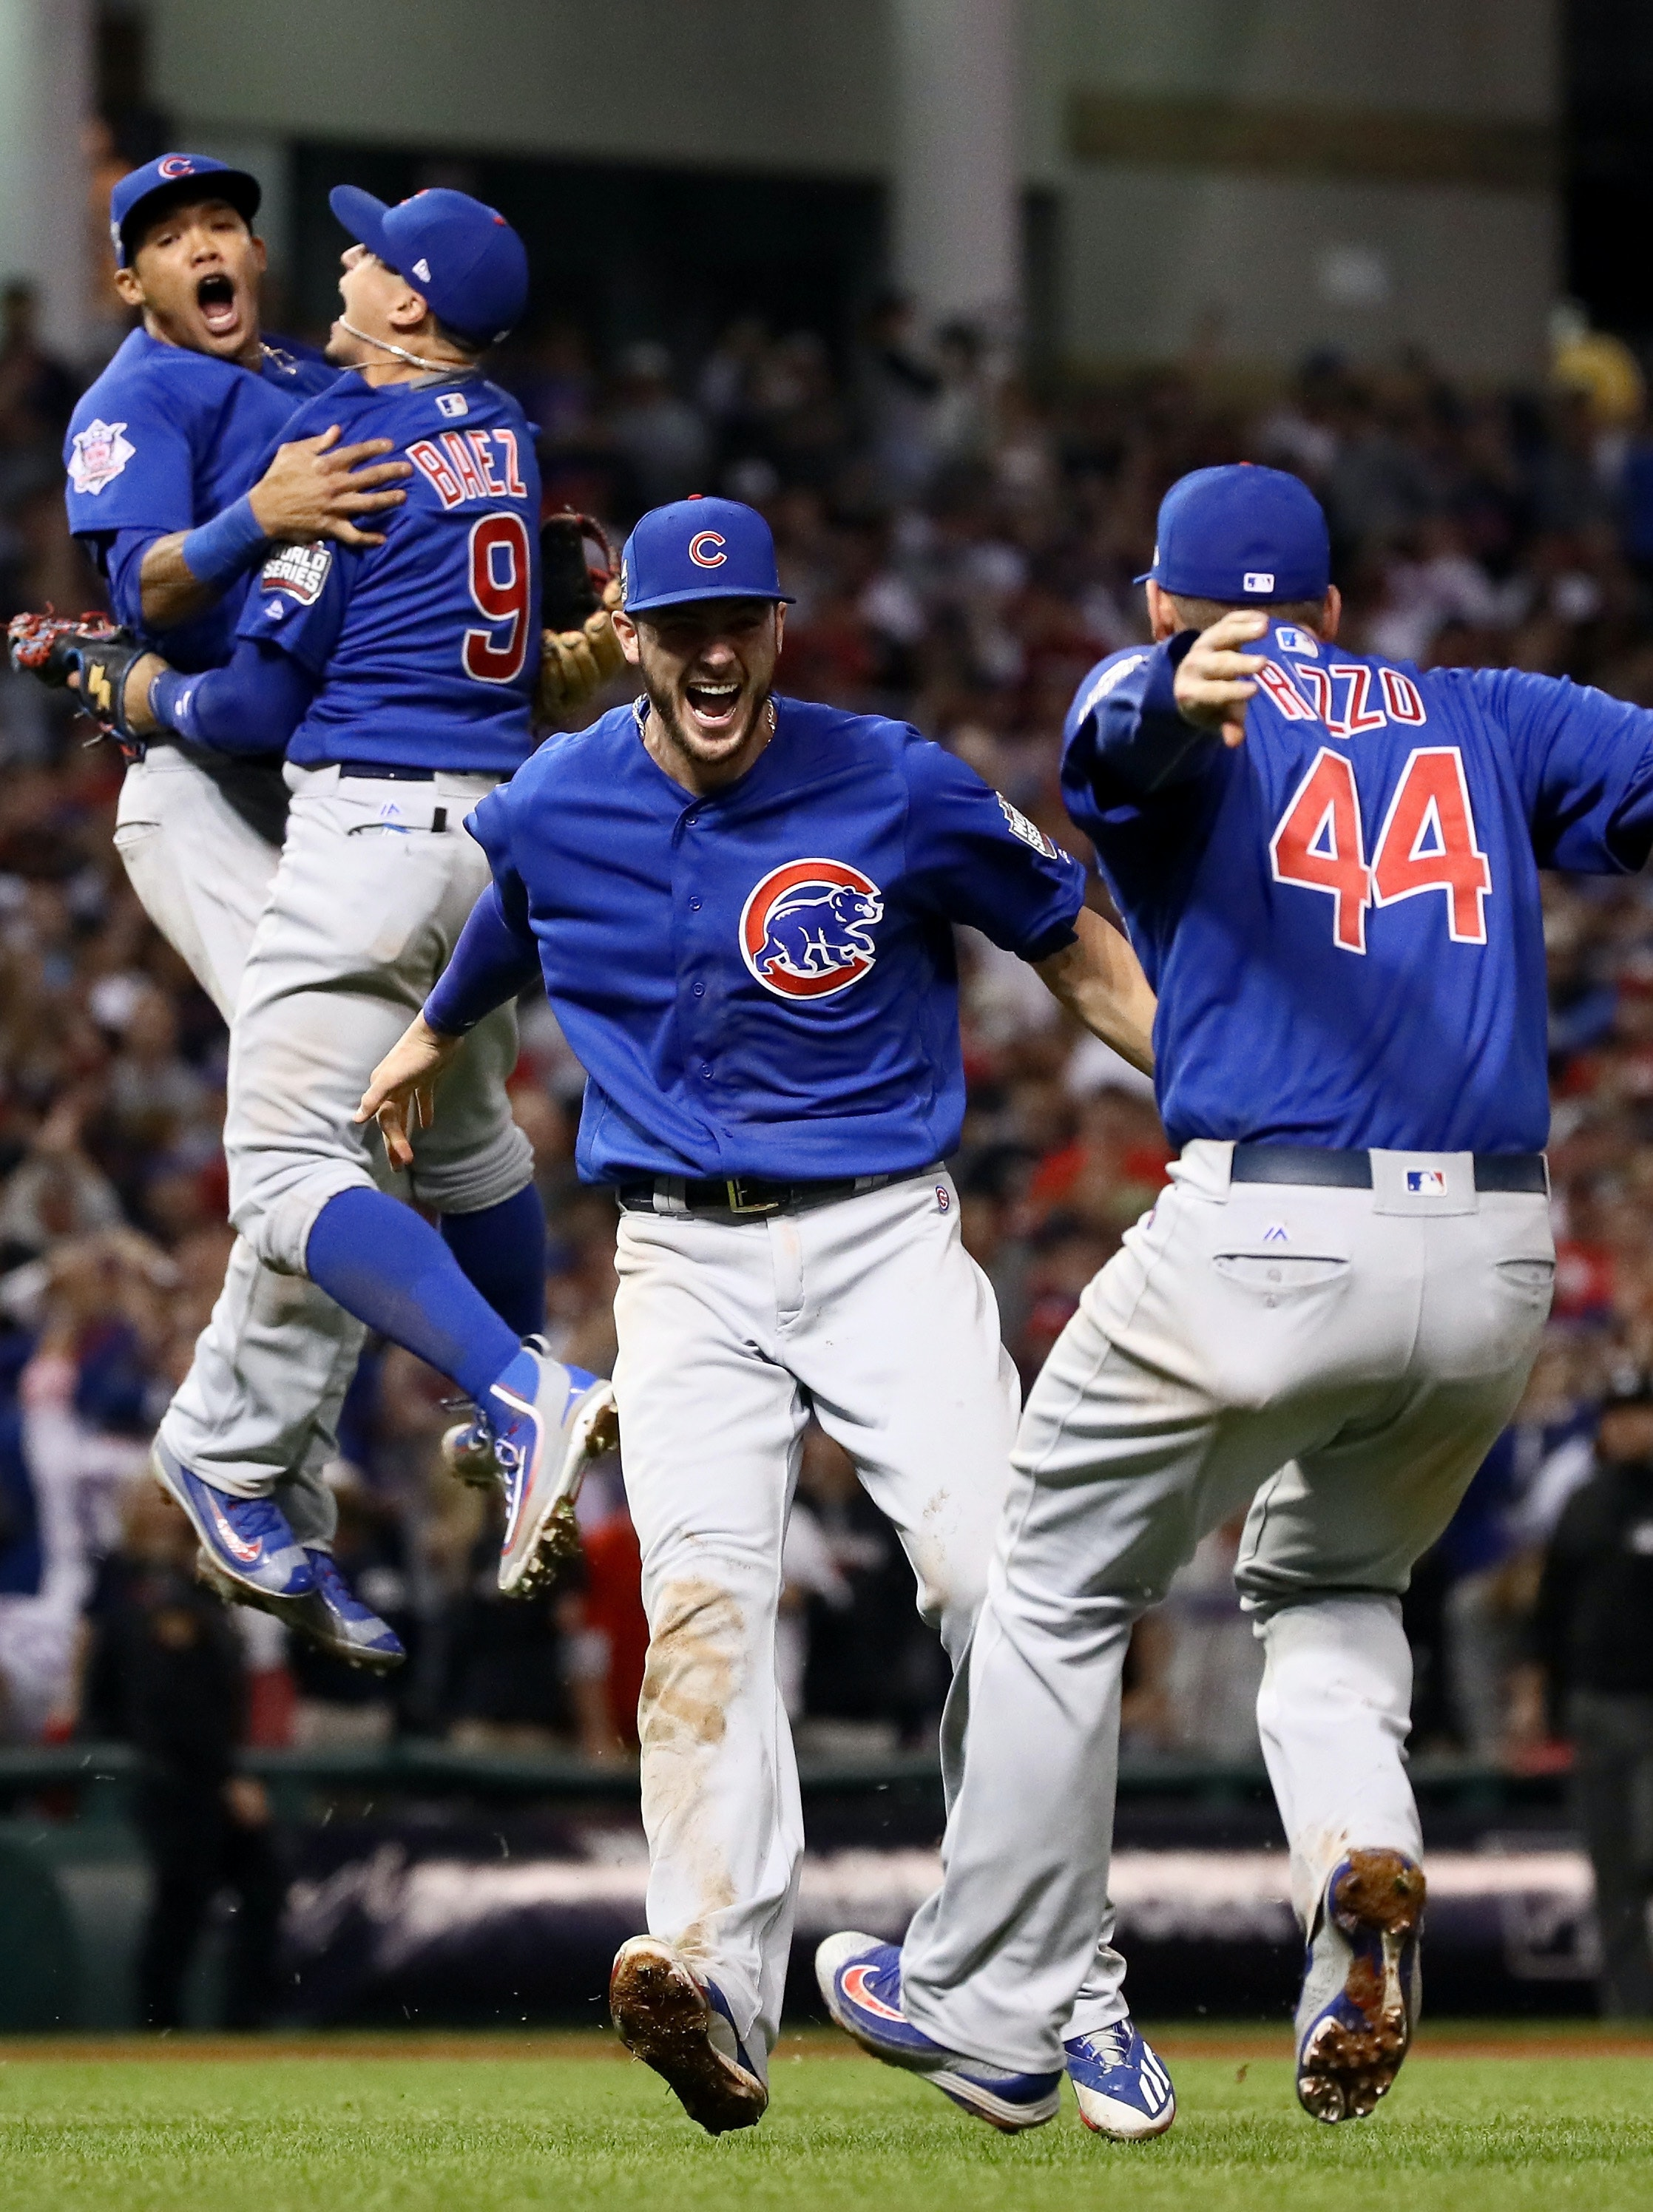 CLEVELAND, OH - NOVEMBER 02:  The Chicago Cubs celebrate after defeating the Cleveland Indians 8-7 in Game Seven of the 2016 World Series at Progressive Field on November 2, 2016 in Cleveland, Ohio. The Cubs win their first World Series in 108 years.  (Photo by Ezra Shaw/Getty Images)